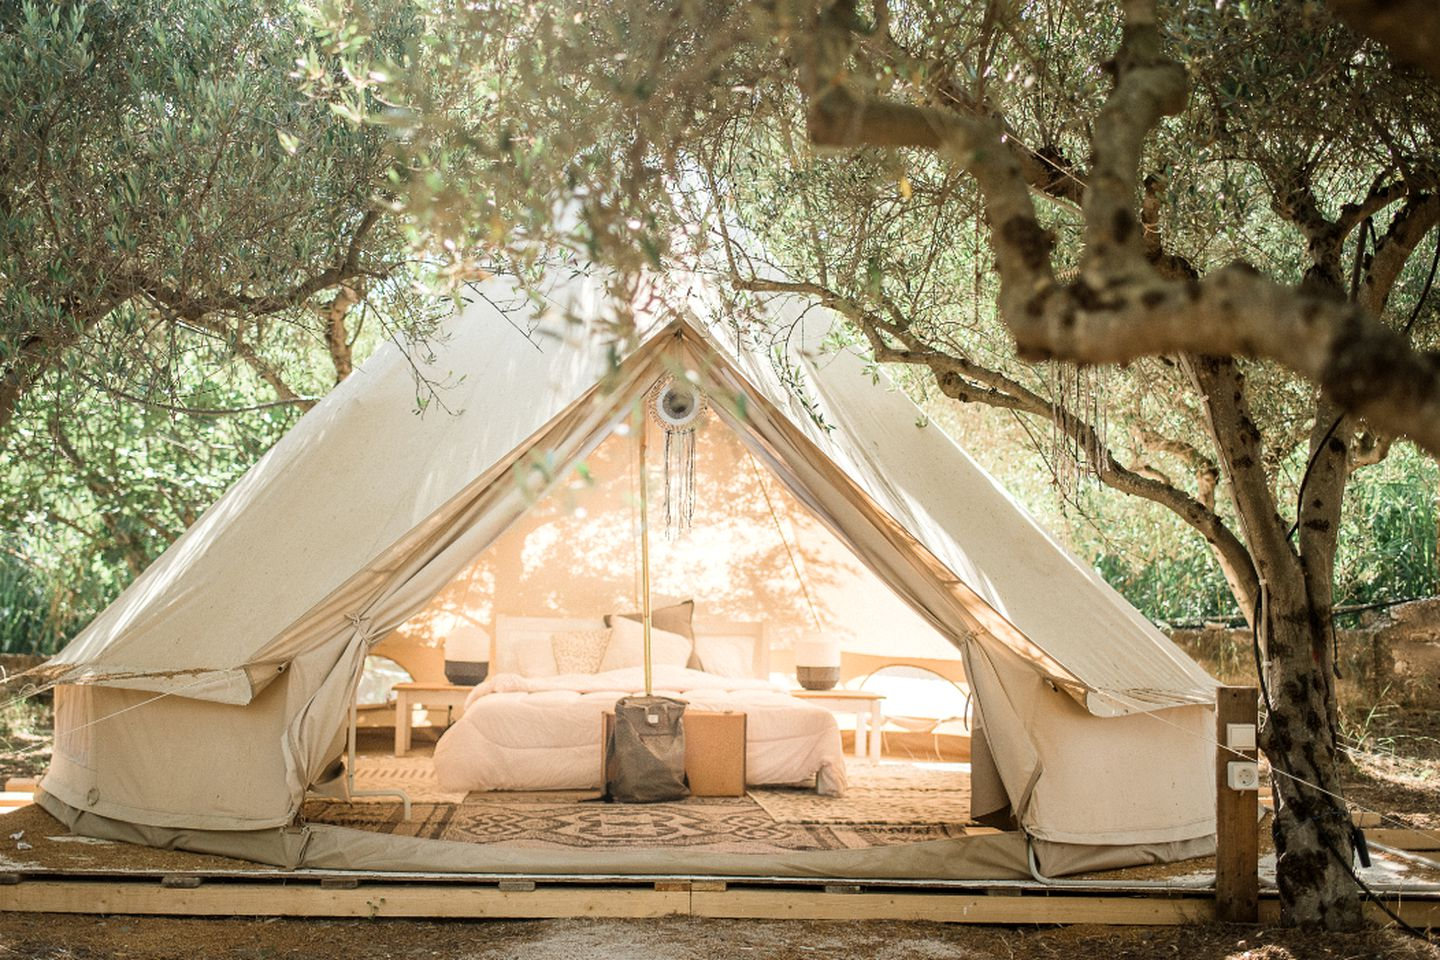 Lovely bell tent rental perfect for glamping in Greece